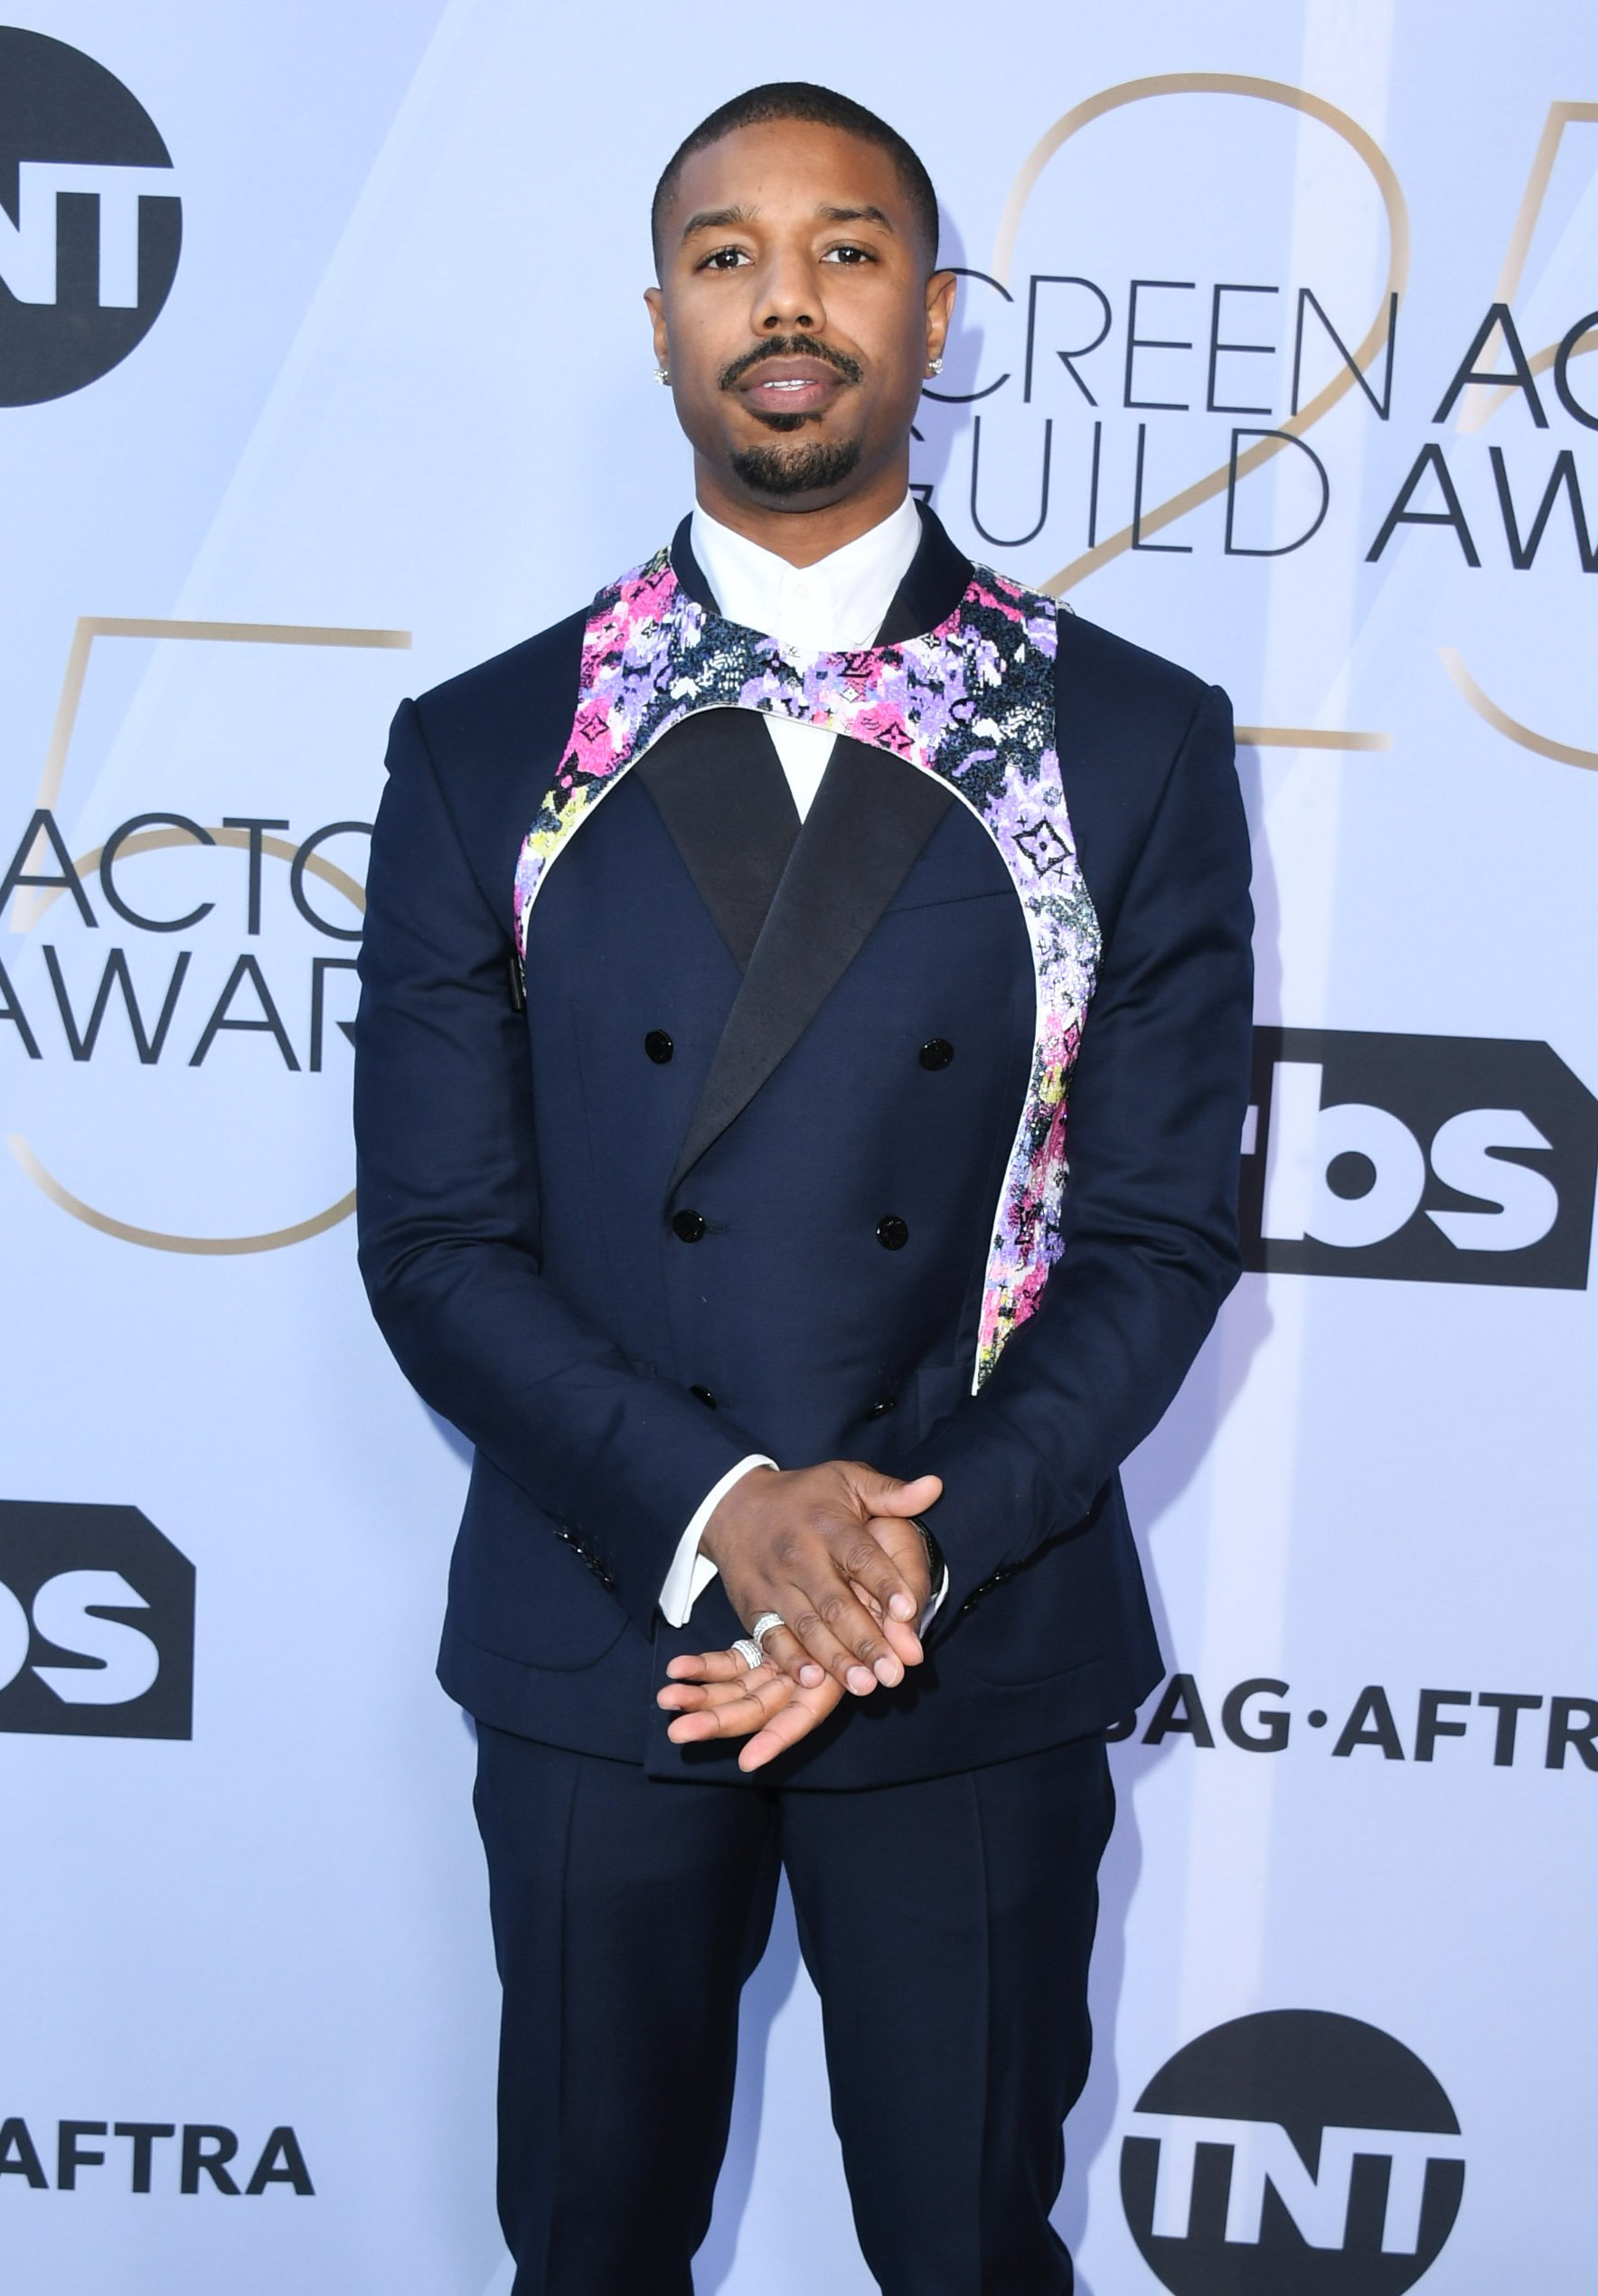 Michael B. Jordan at the 25th Annual Screen Actors Guild Awards in California on Jan. 27, 2019 | Photo: Getty Images